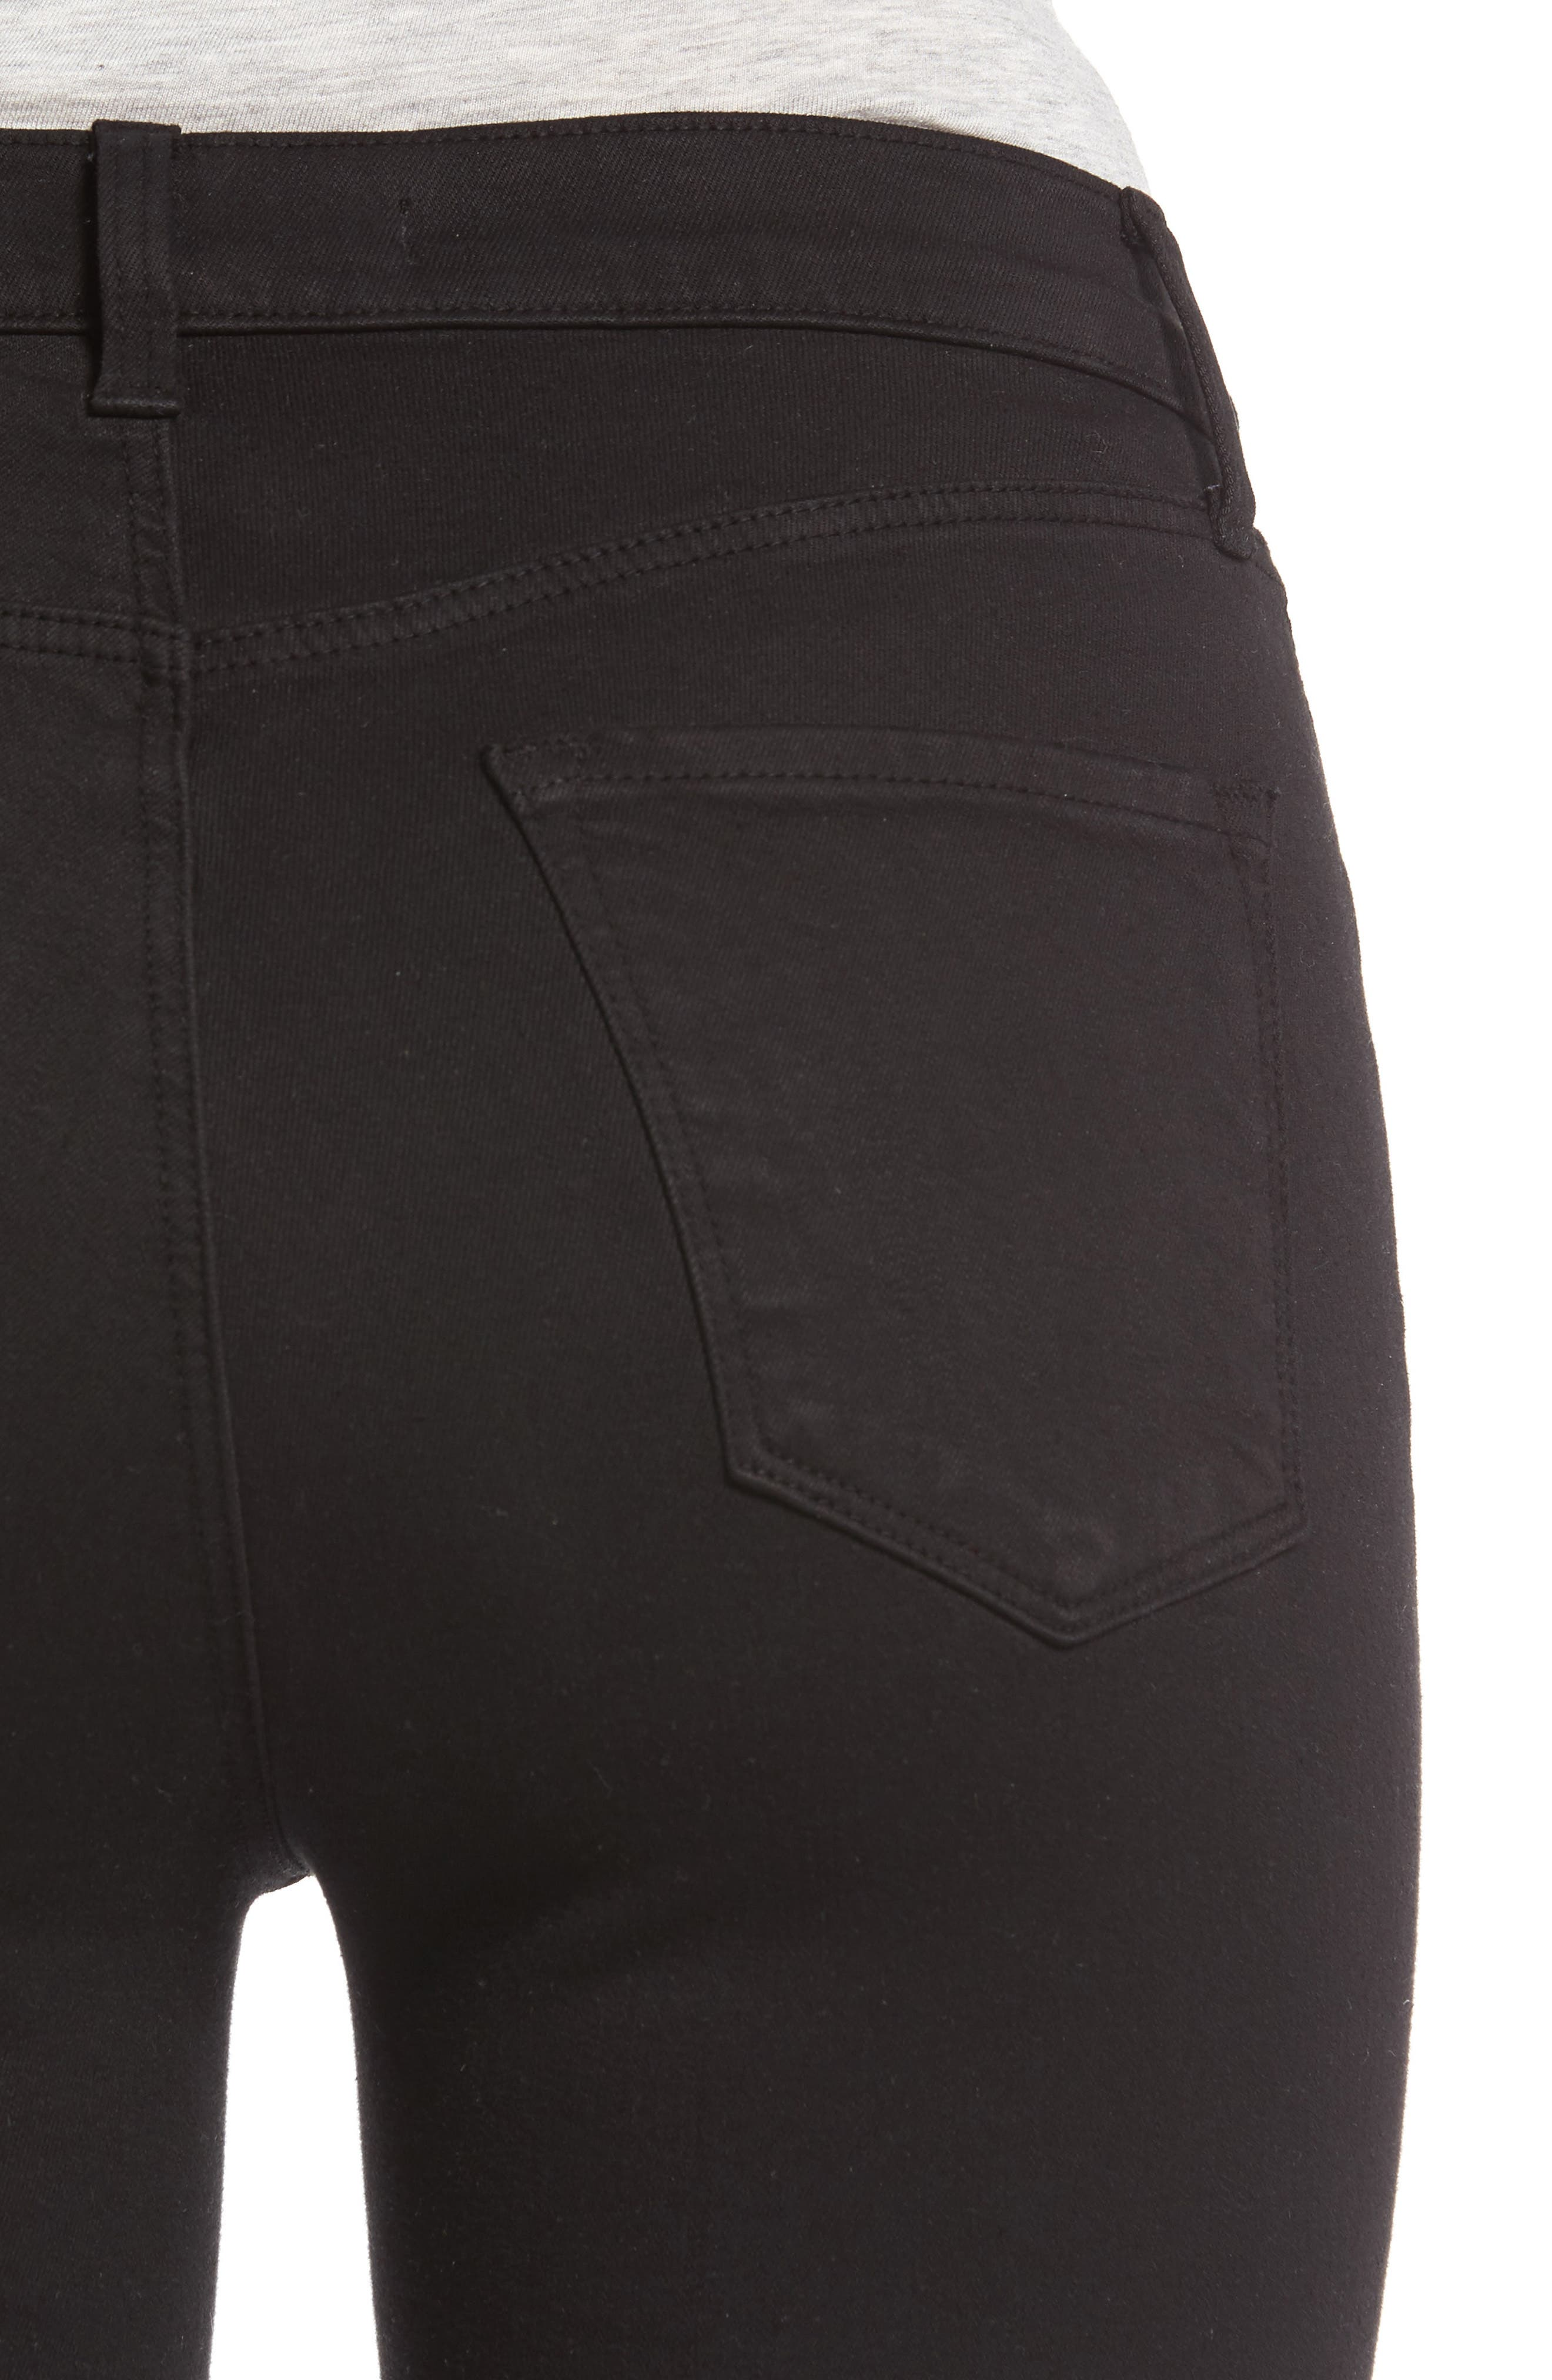 Maria High Waist Skinny Jeans,                             Alternate thumbnail 4, color,                             BLACK